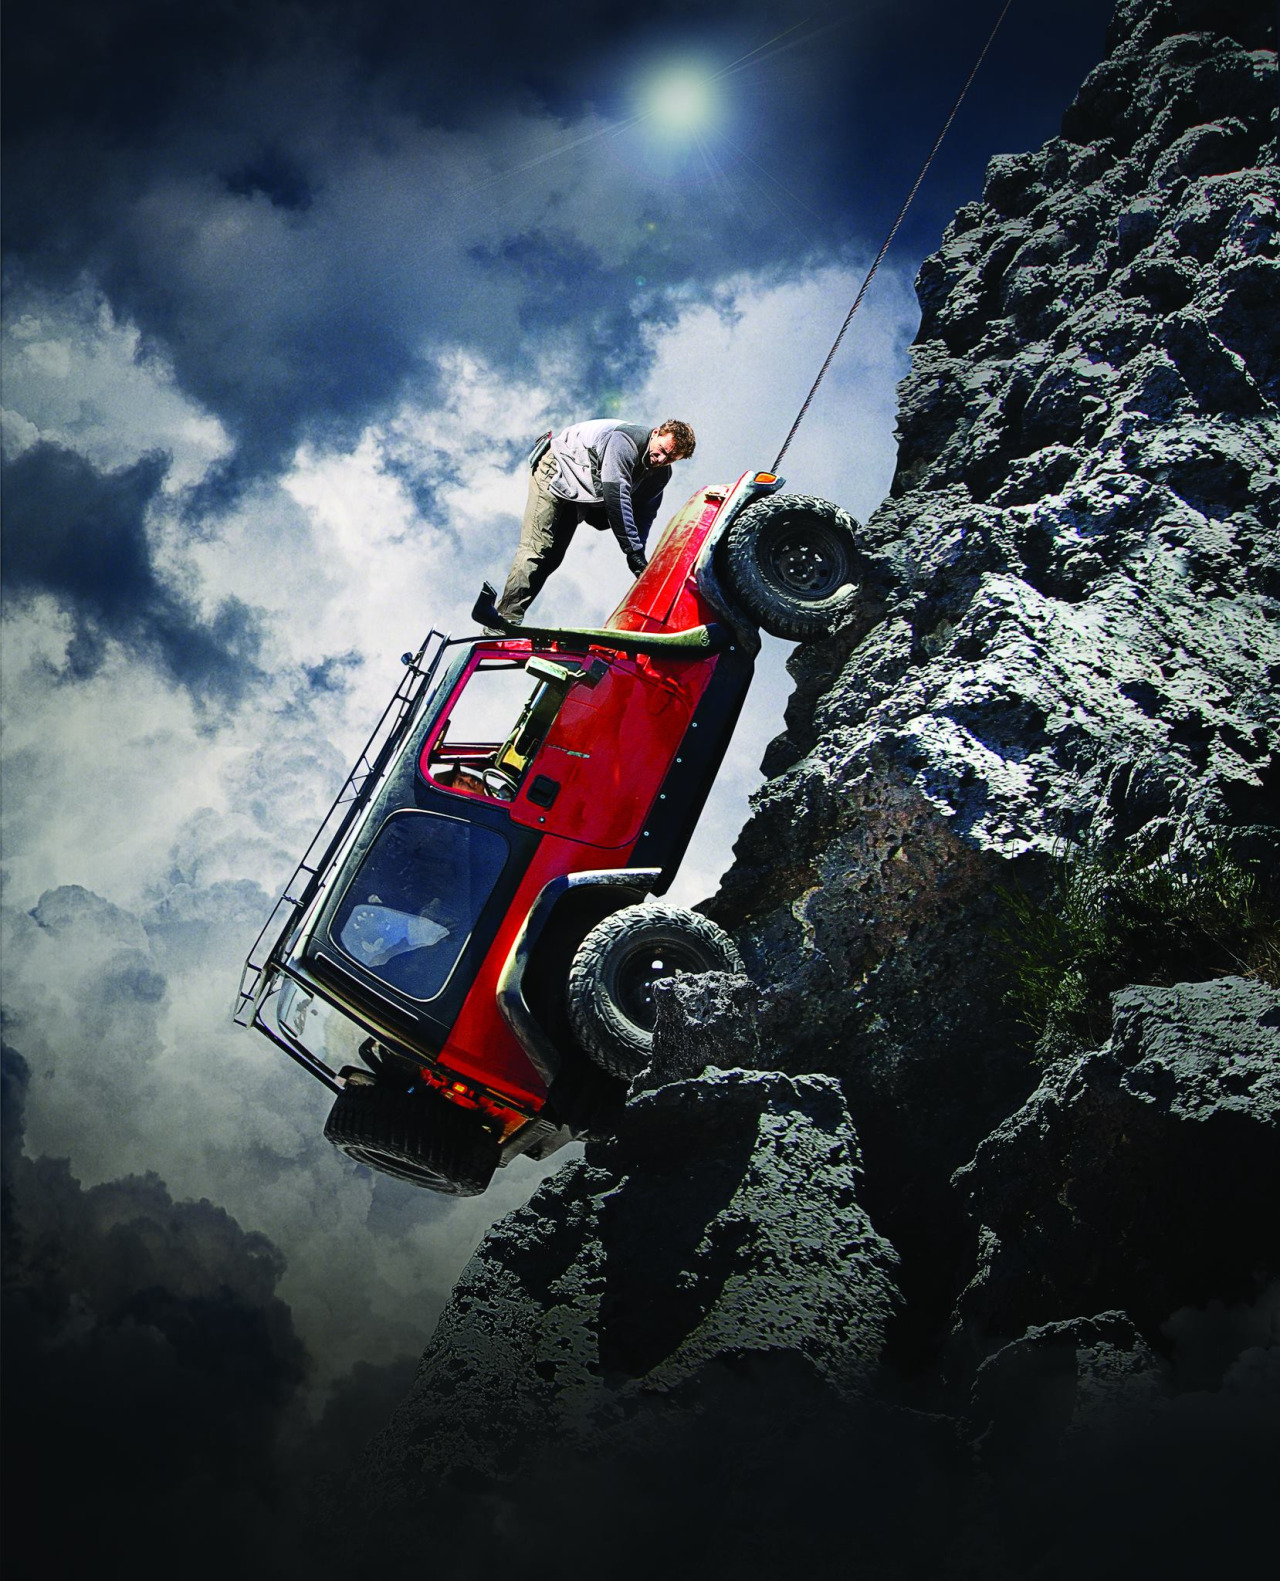 A defining moment and fitting finale to my shoot for Car vs Wild. We literally winched all two tonnes of the jeep 'Ruby' up a vertical lava wall in the middle of Mexico's Sonoran desert.